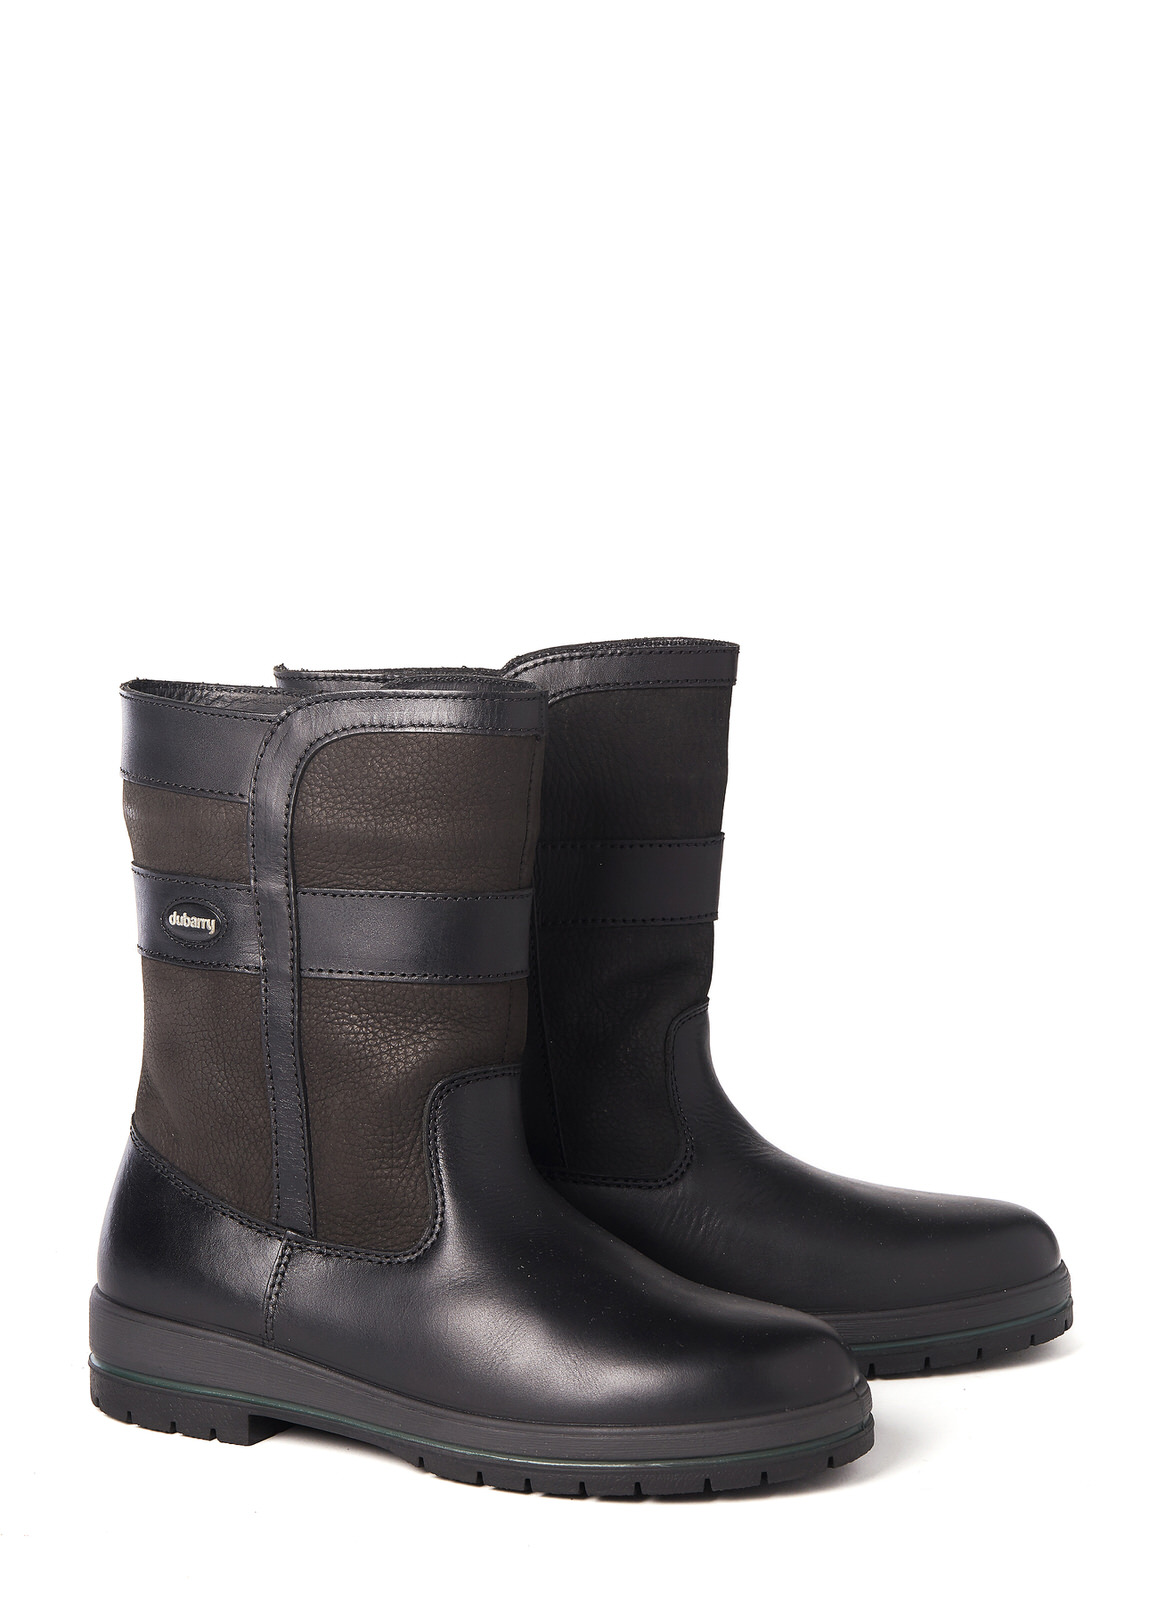 Roscommon Country Boot - Black